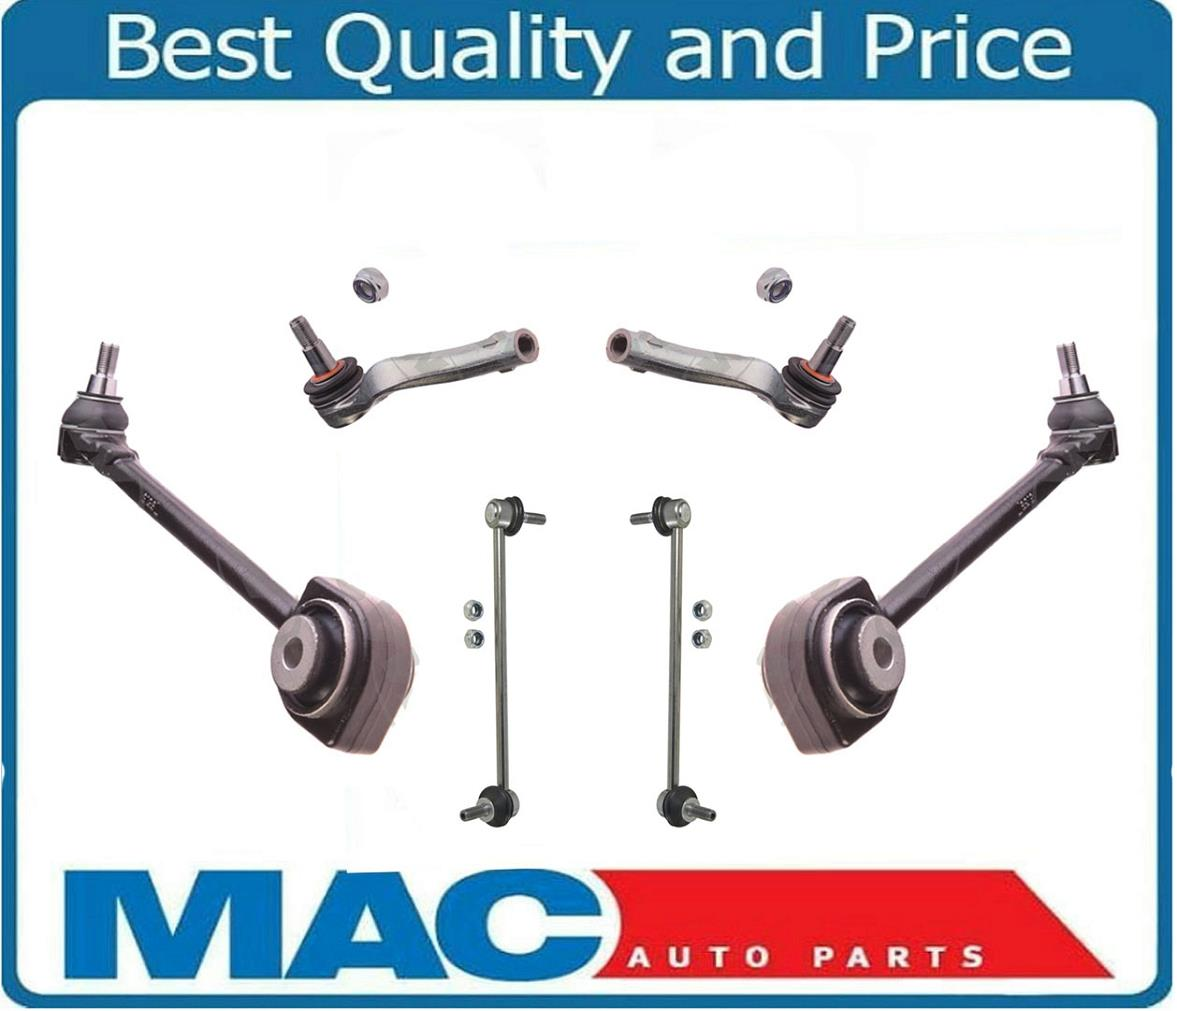 Mac Auto Parts New Front Lower Rear Control Arms for Mercedes-Benz E320 03-09 Rear Wheel Drive